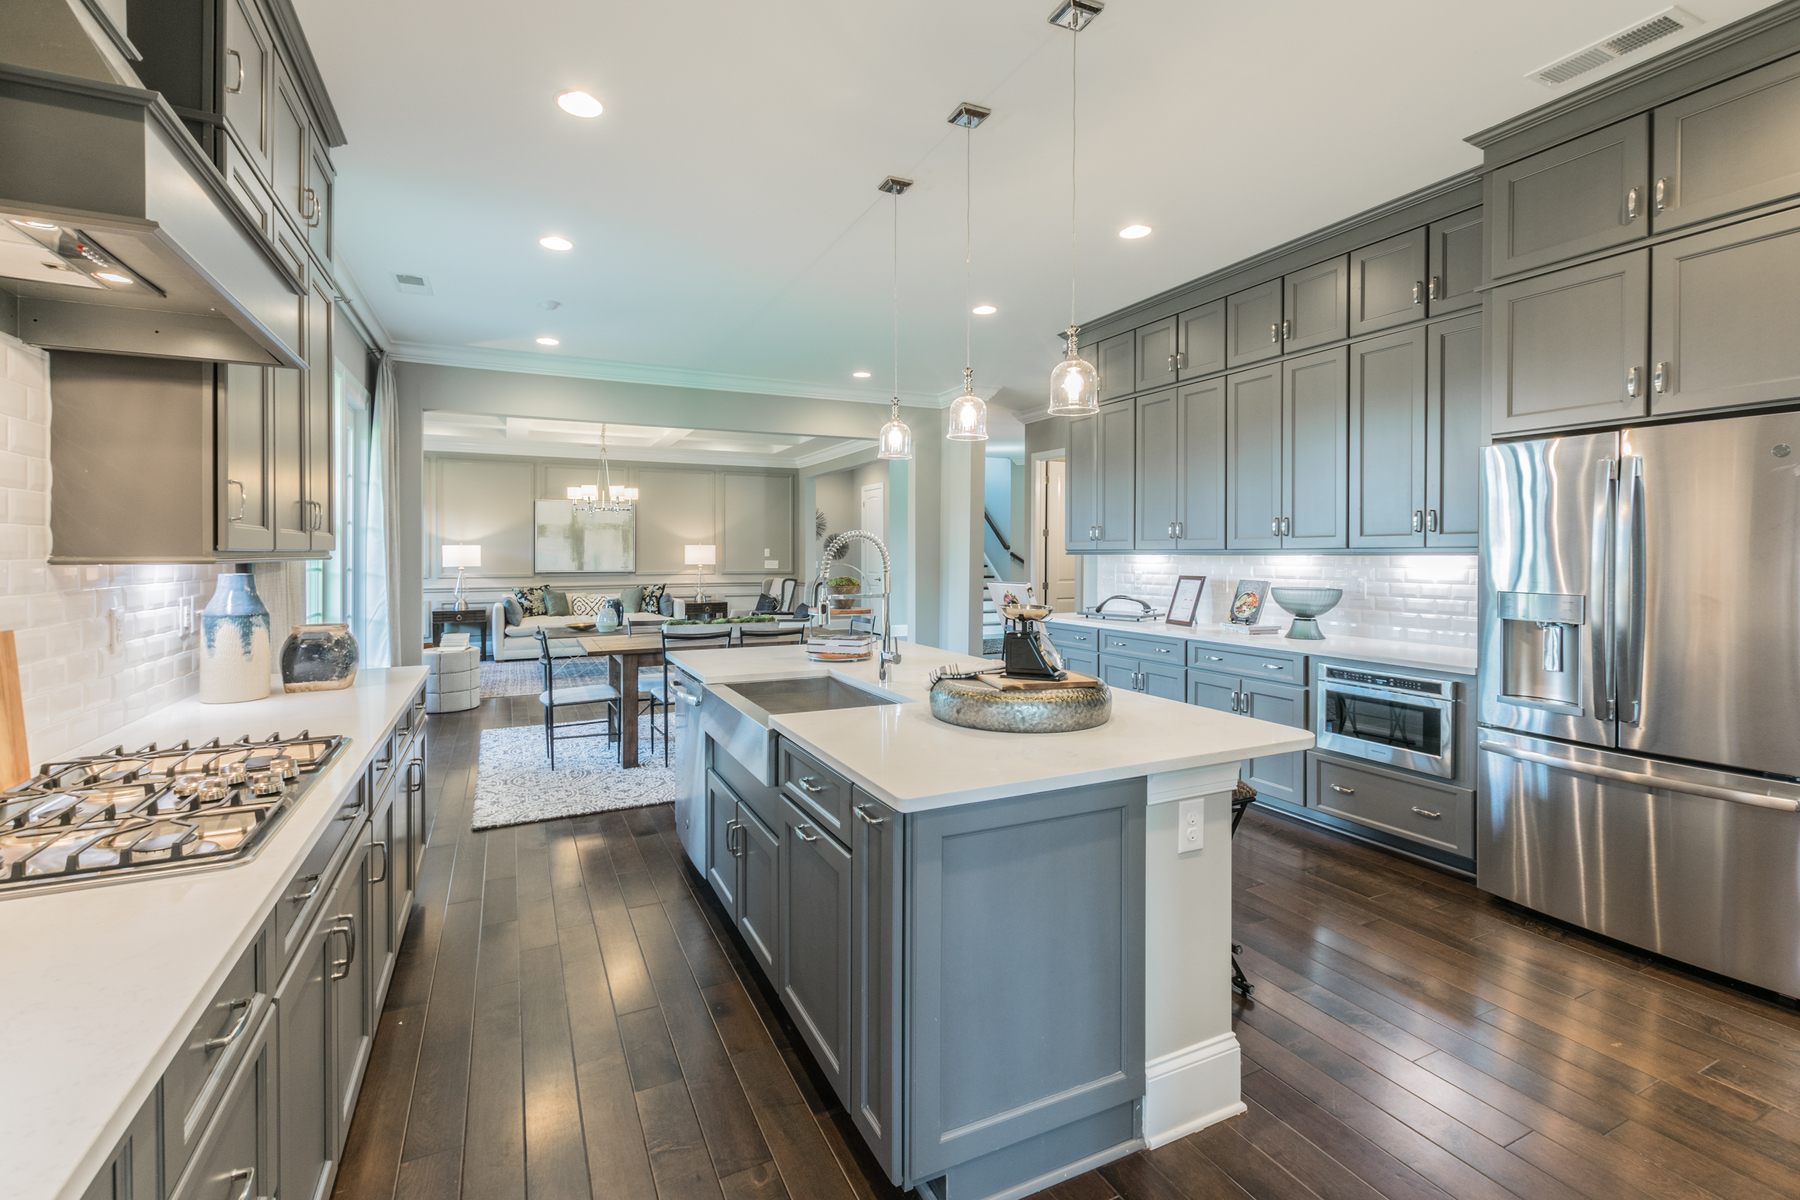 Harlow\'s Crossing - Homes for Sale in Weddington, NC - M/I Homes